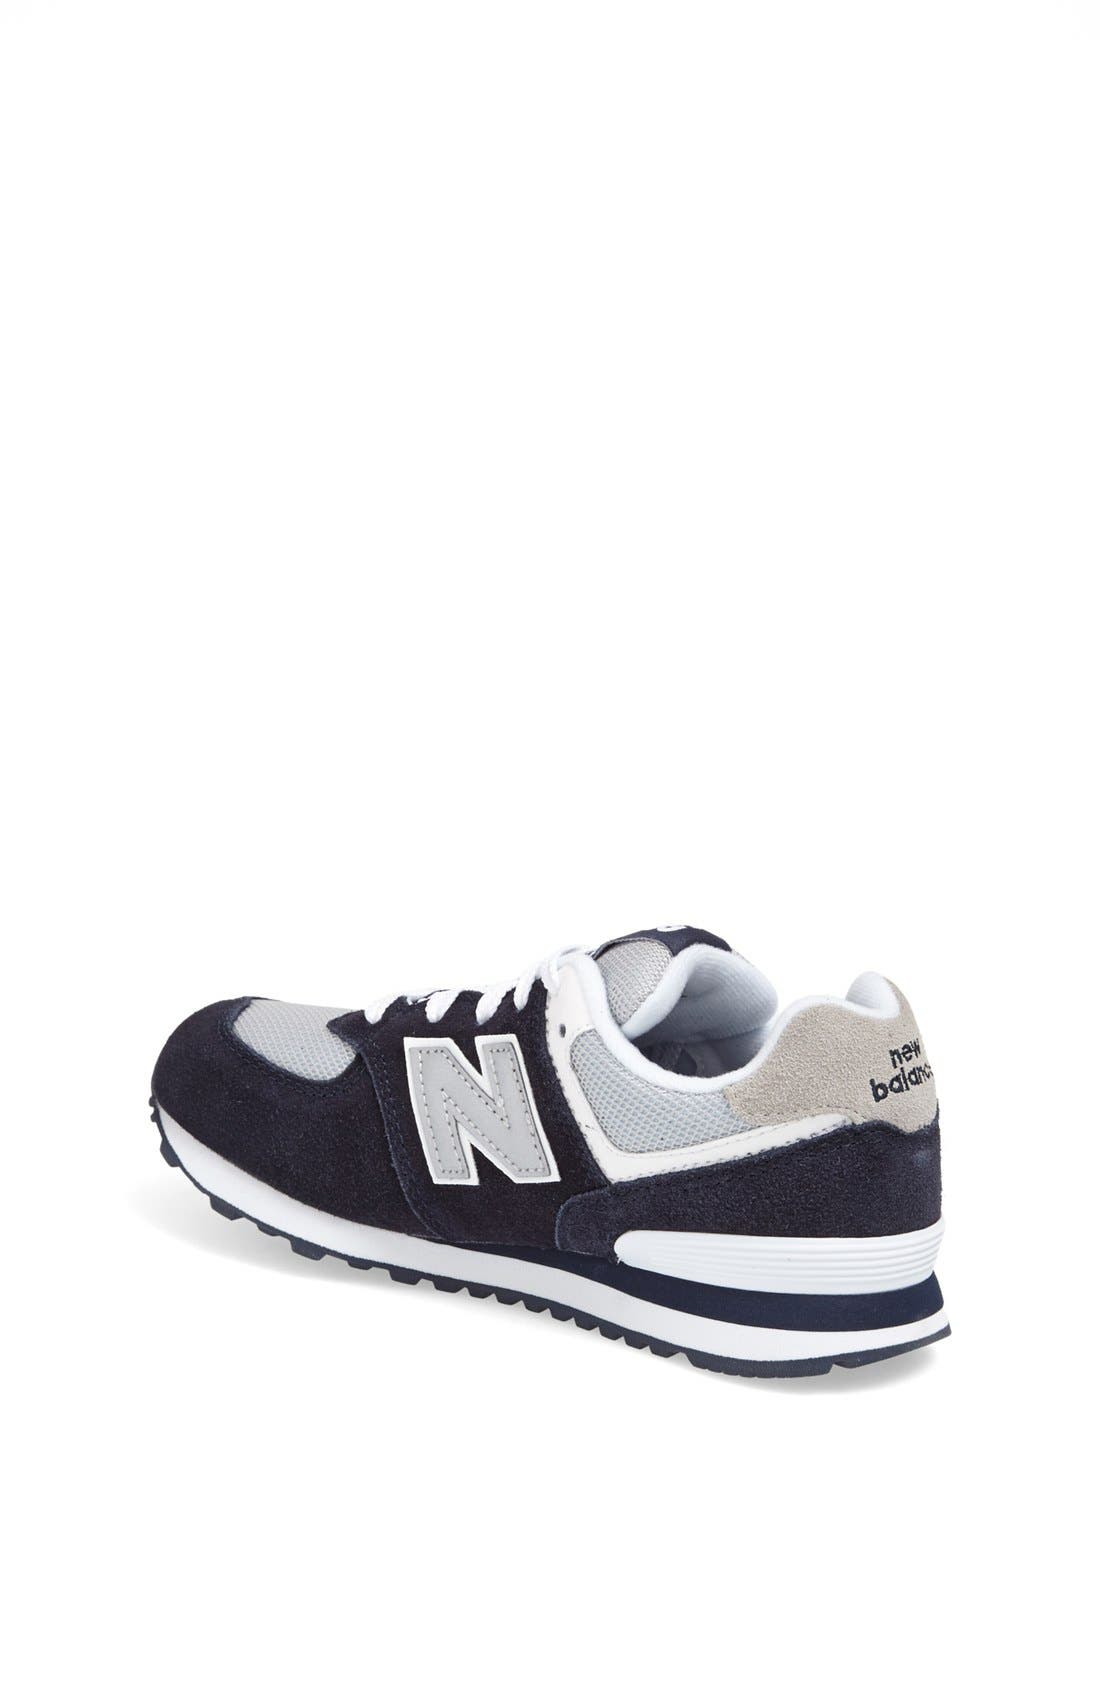 Alternate Image 2  - New Balance '574 Classic' Sneaker (Toddler & Little Kid)